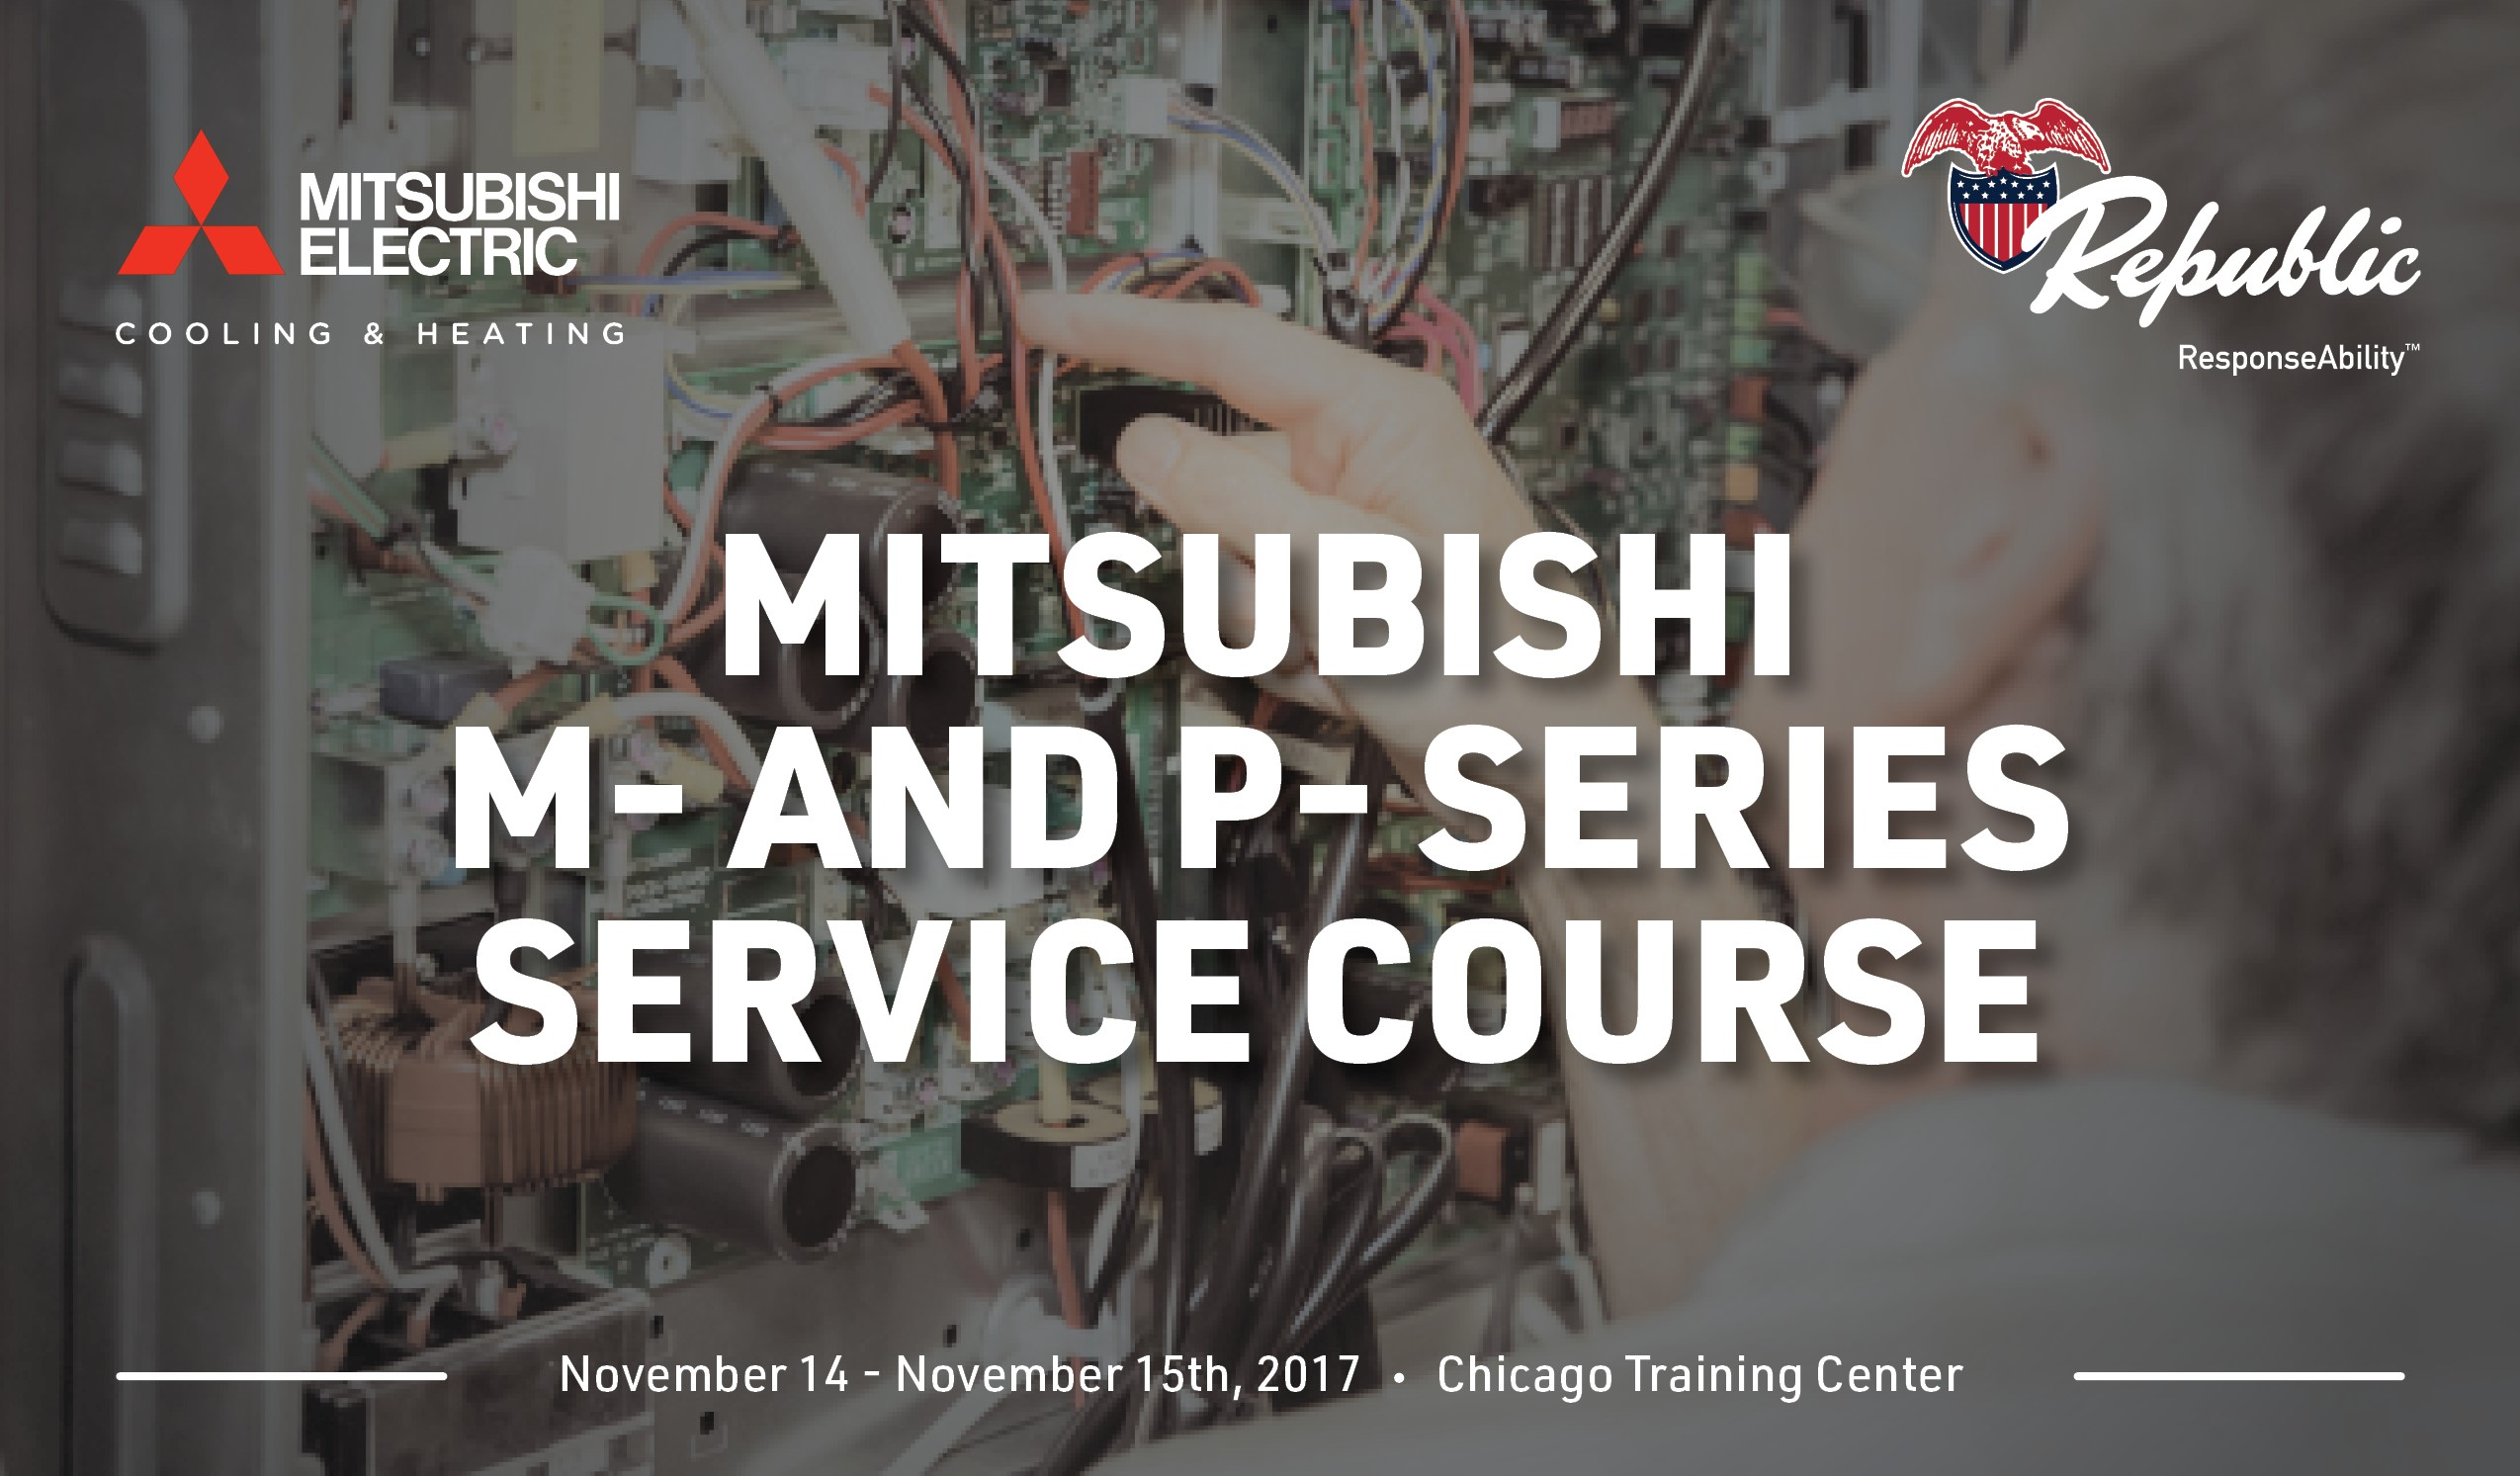 Mitsubishi M- and P- Series Service Course